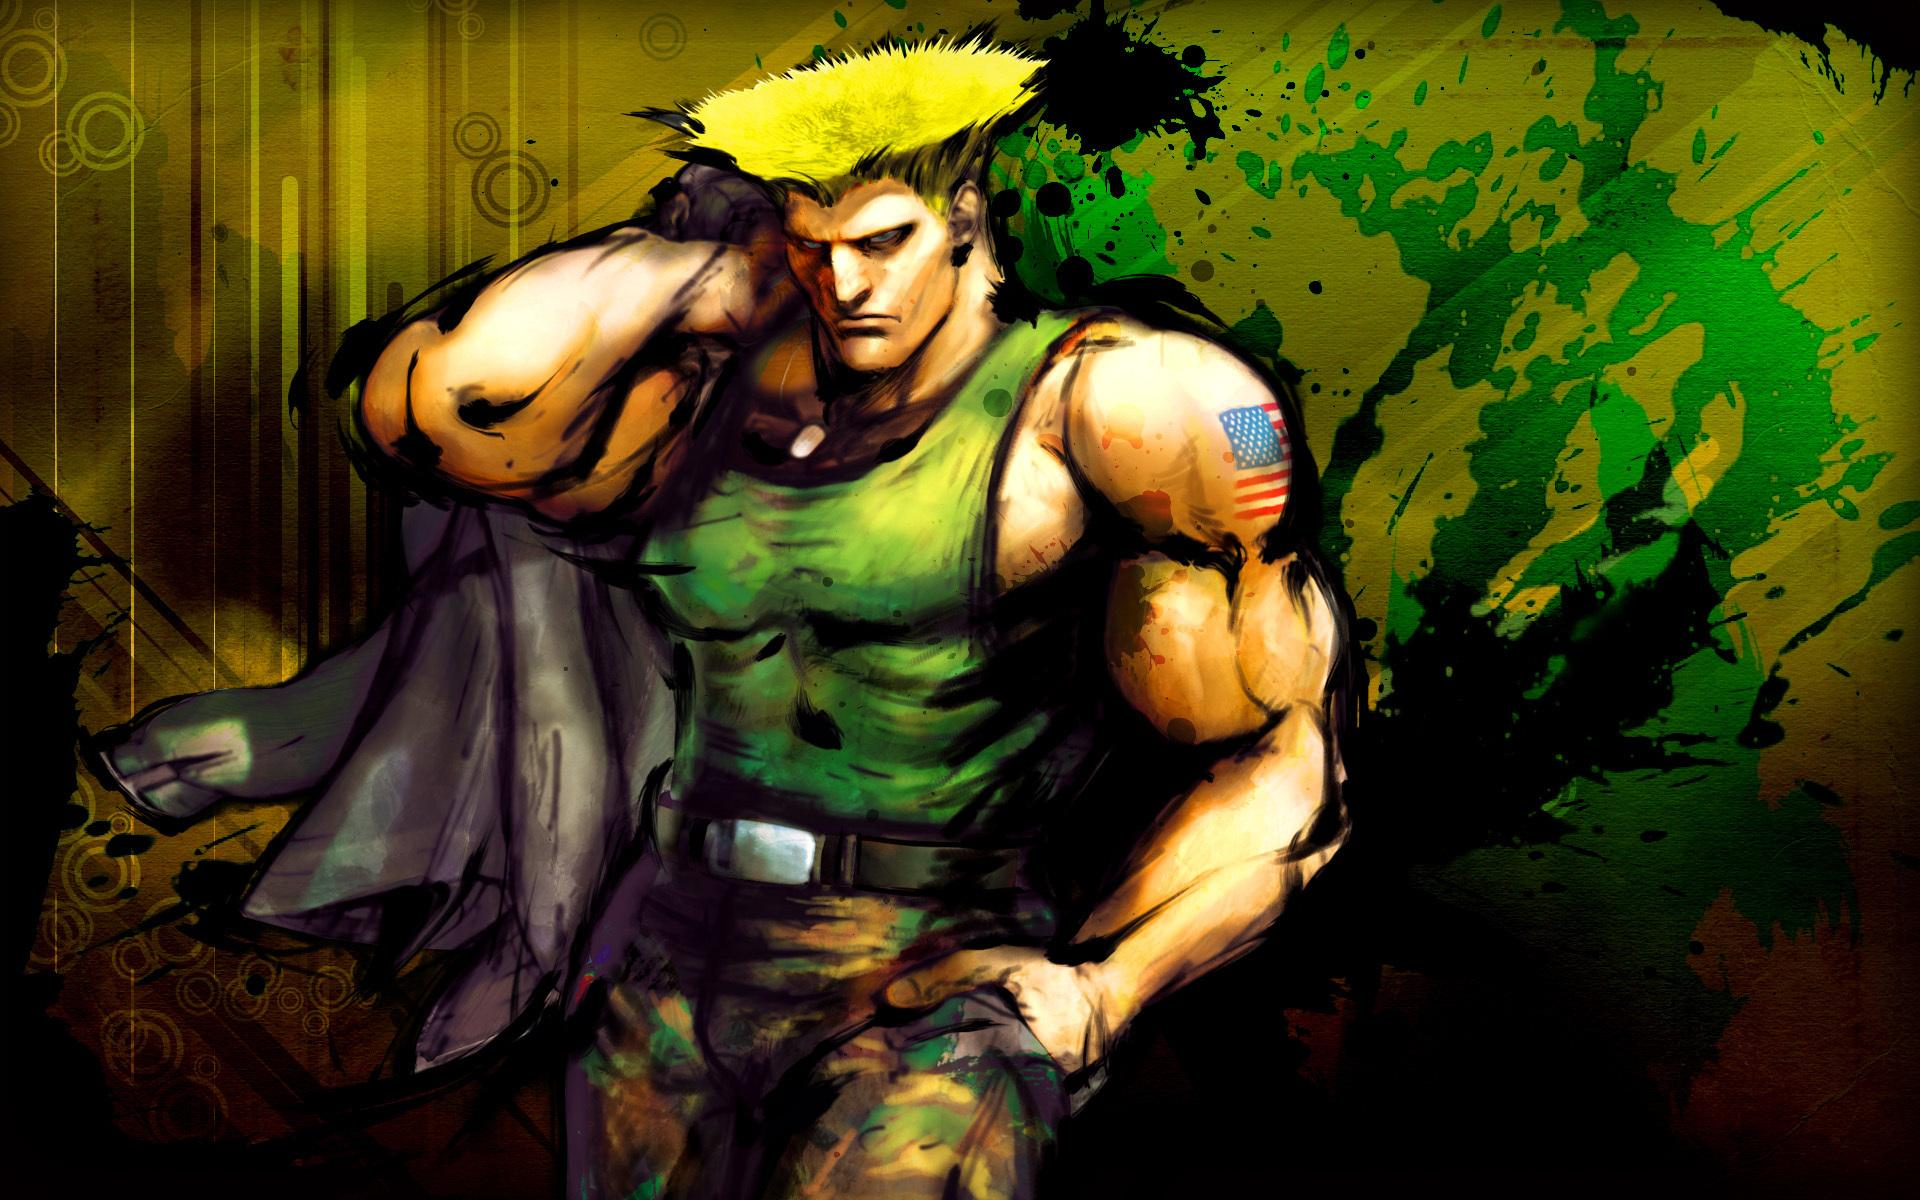 Street Fighter image Guile HD wallpapers and backgrounds photos